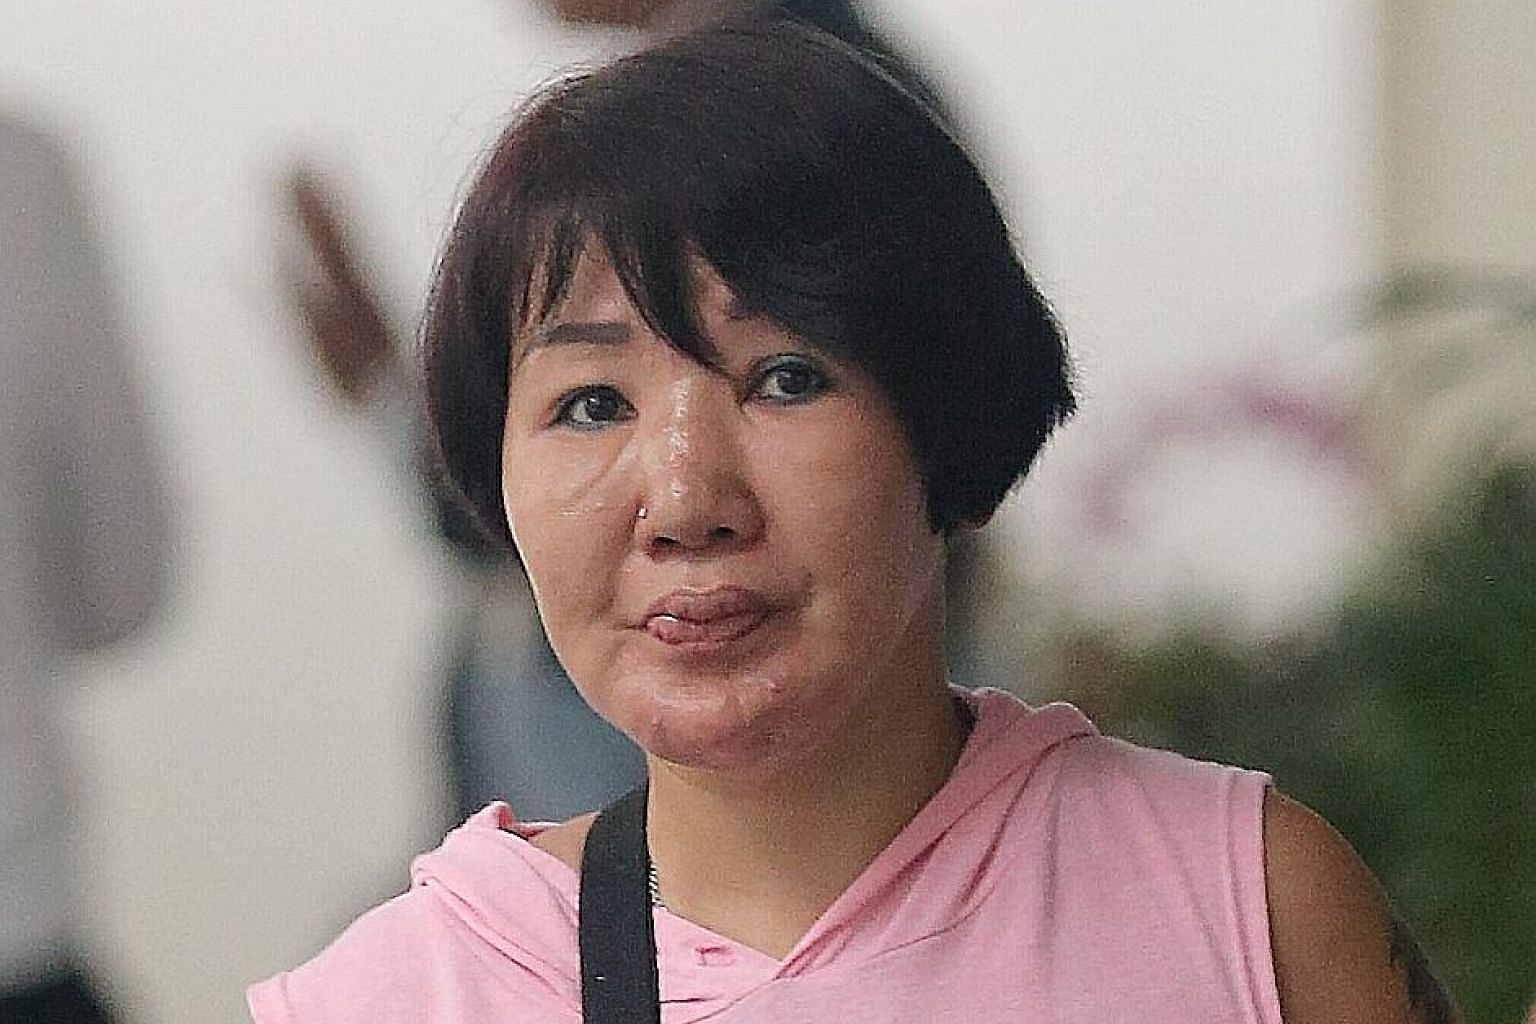 Ms Wendy Tan Li San suffered second-degree burns after her former husband poured hot water on her.